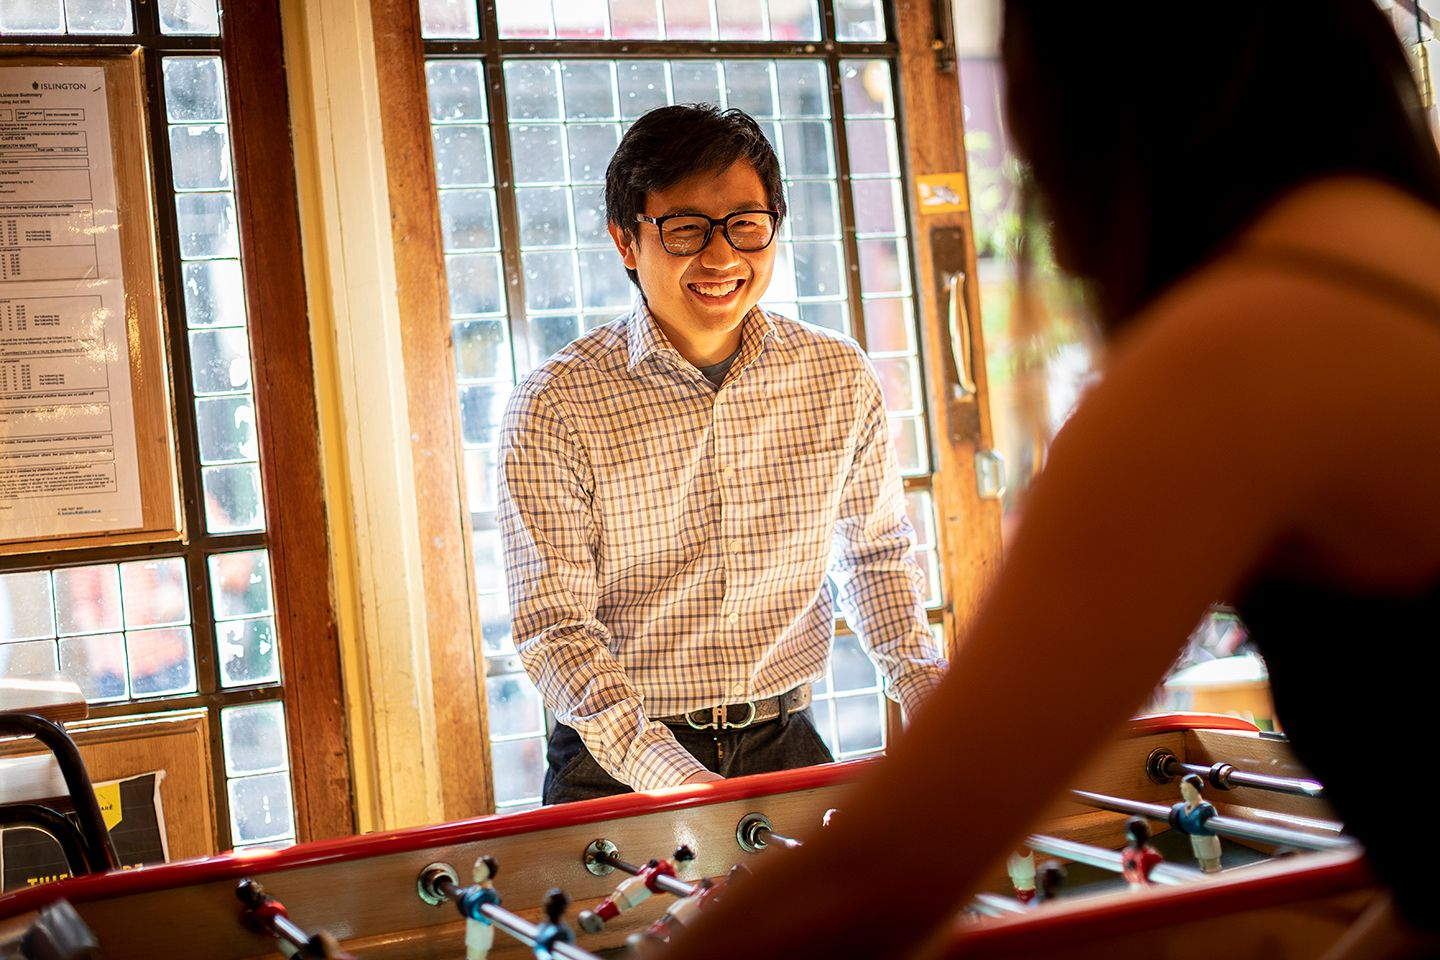 Man playing foosball